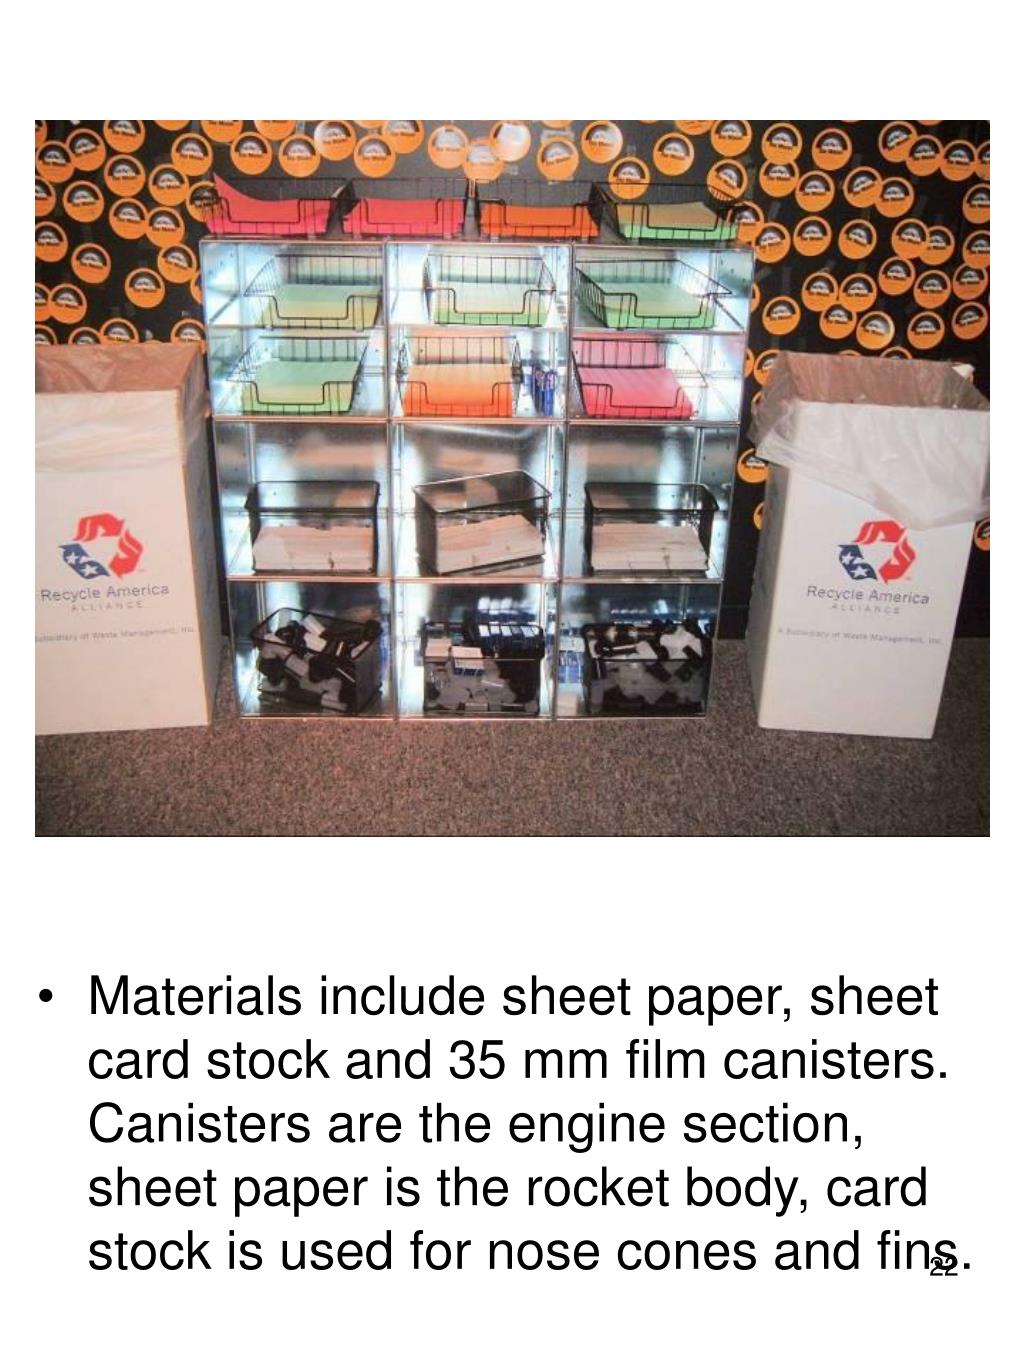 Materials include sheet paper, sheet card stock and 35 mm film canisters. Canisters are the engine section, sheet paper is the rocket body, card stock is used for nose cones and fins.